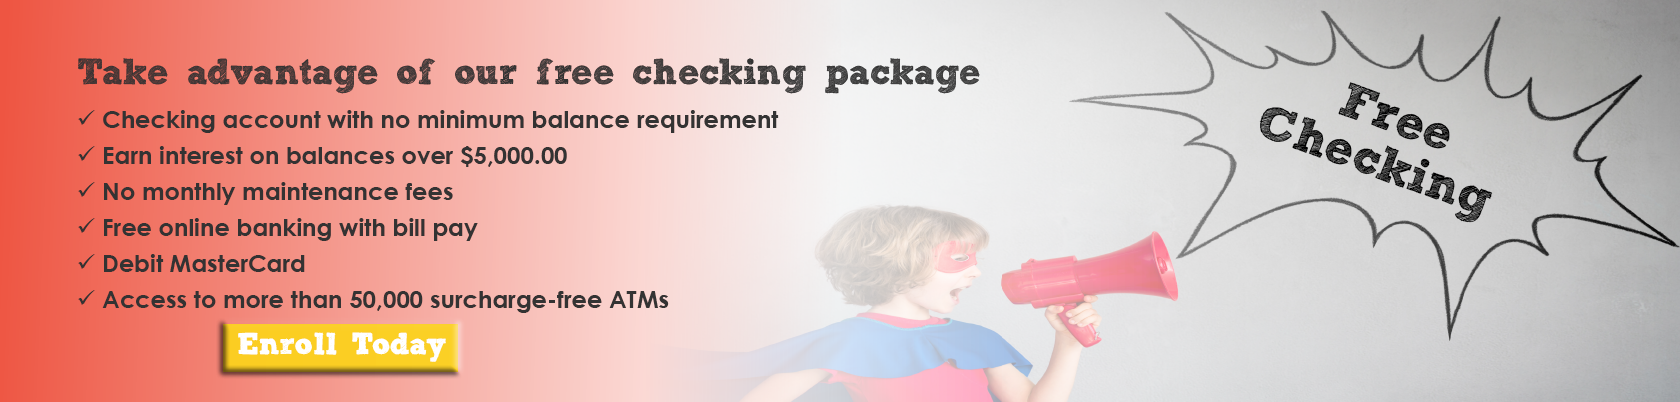 Take advantage of our free checking package